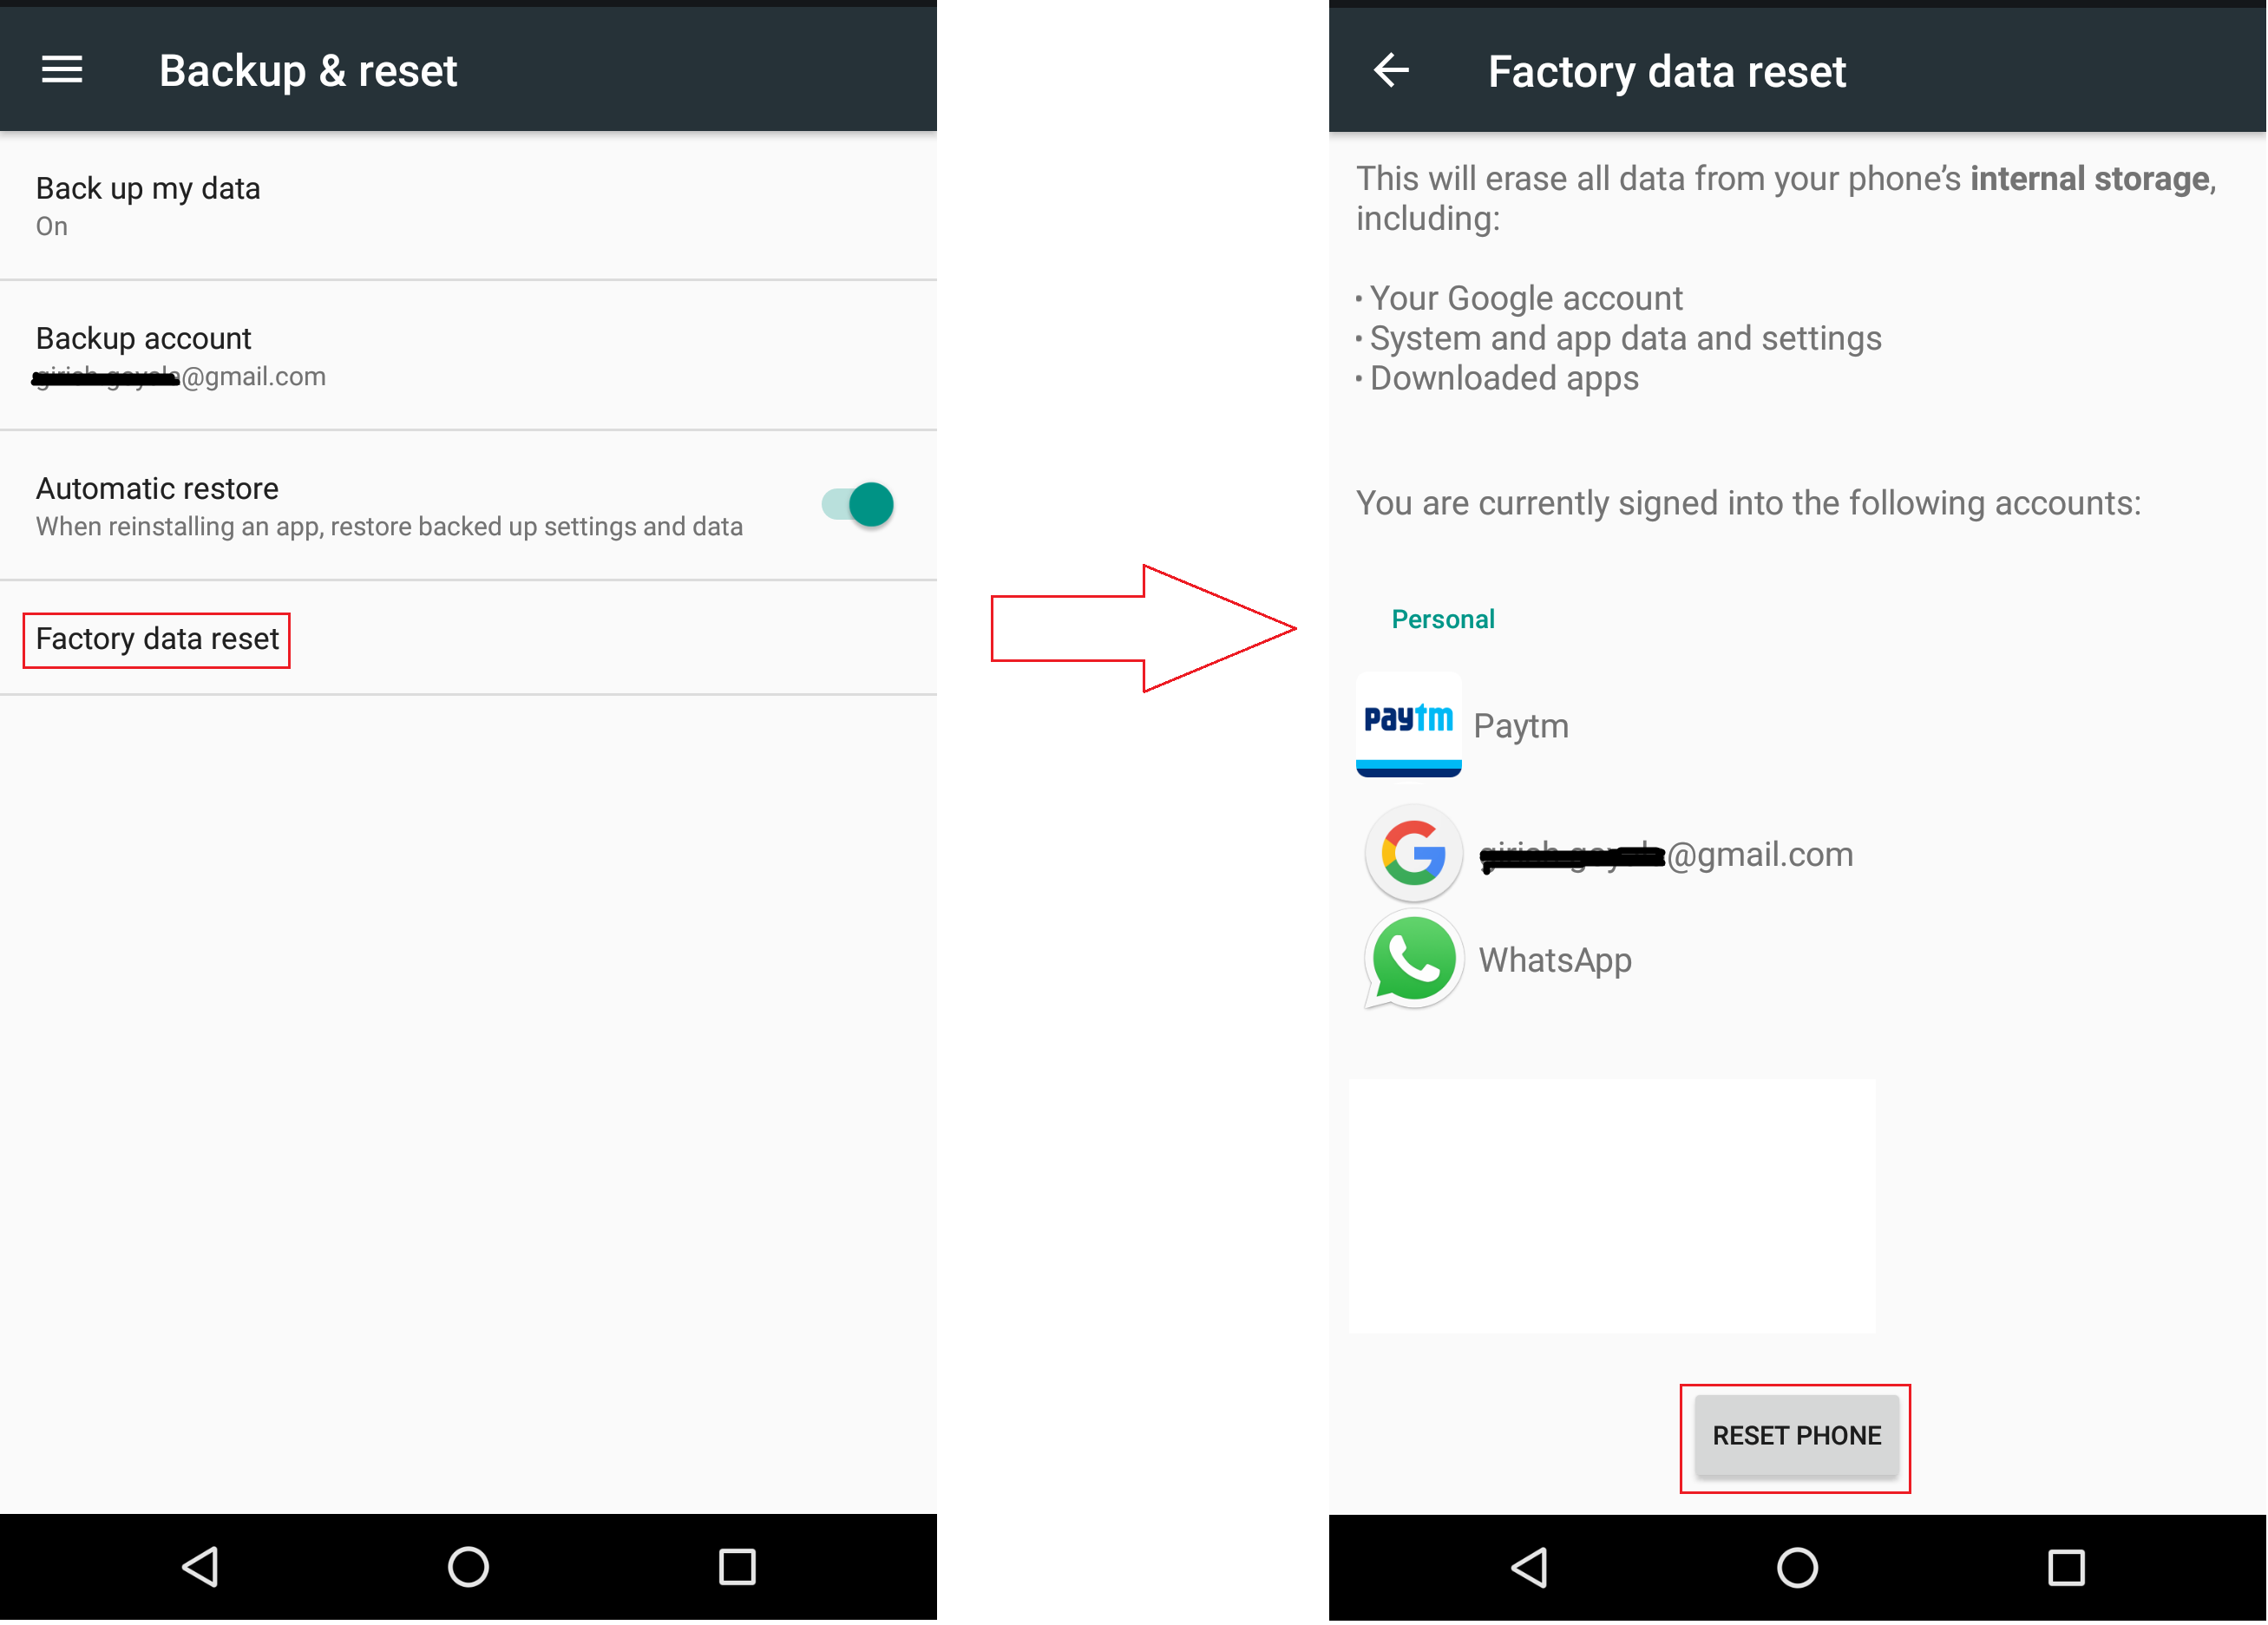 Mobile Factory Data Reset